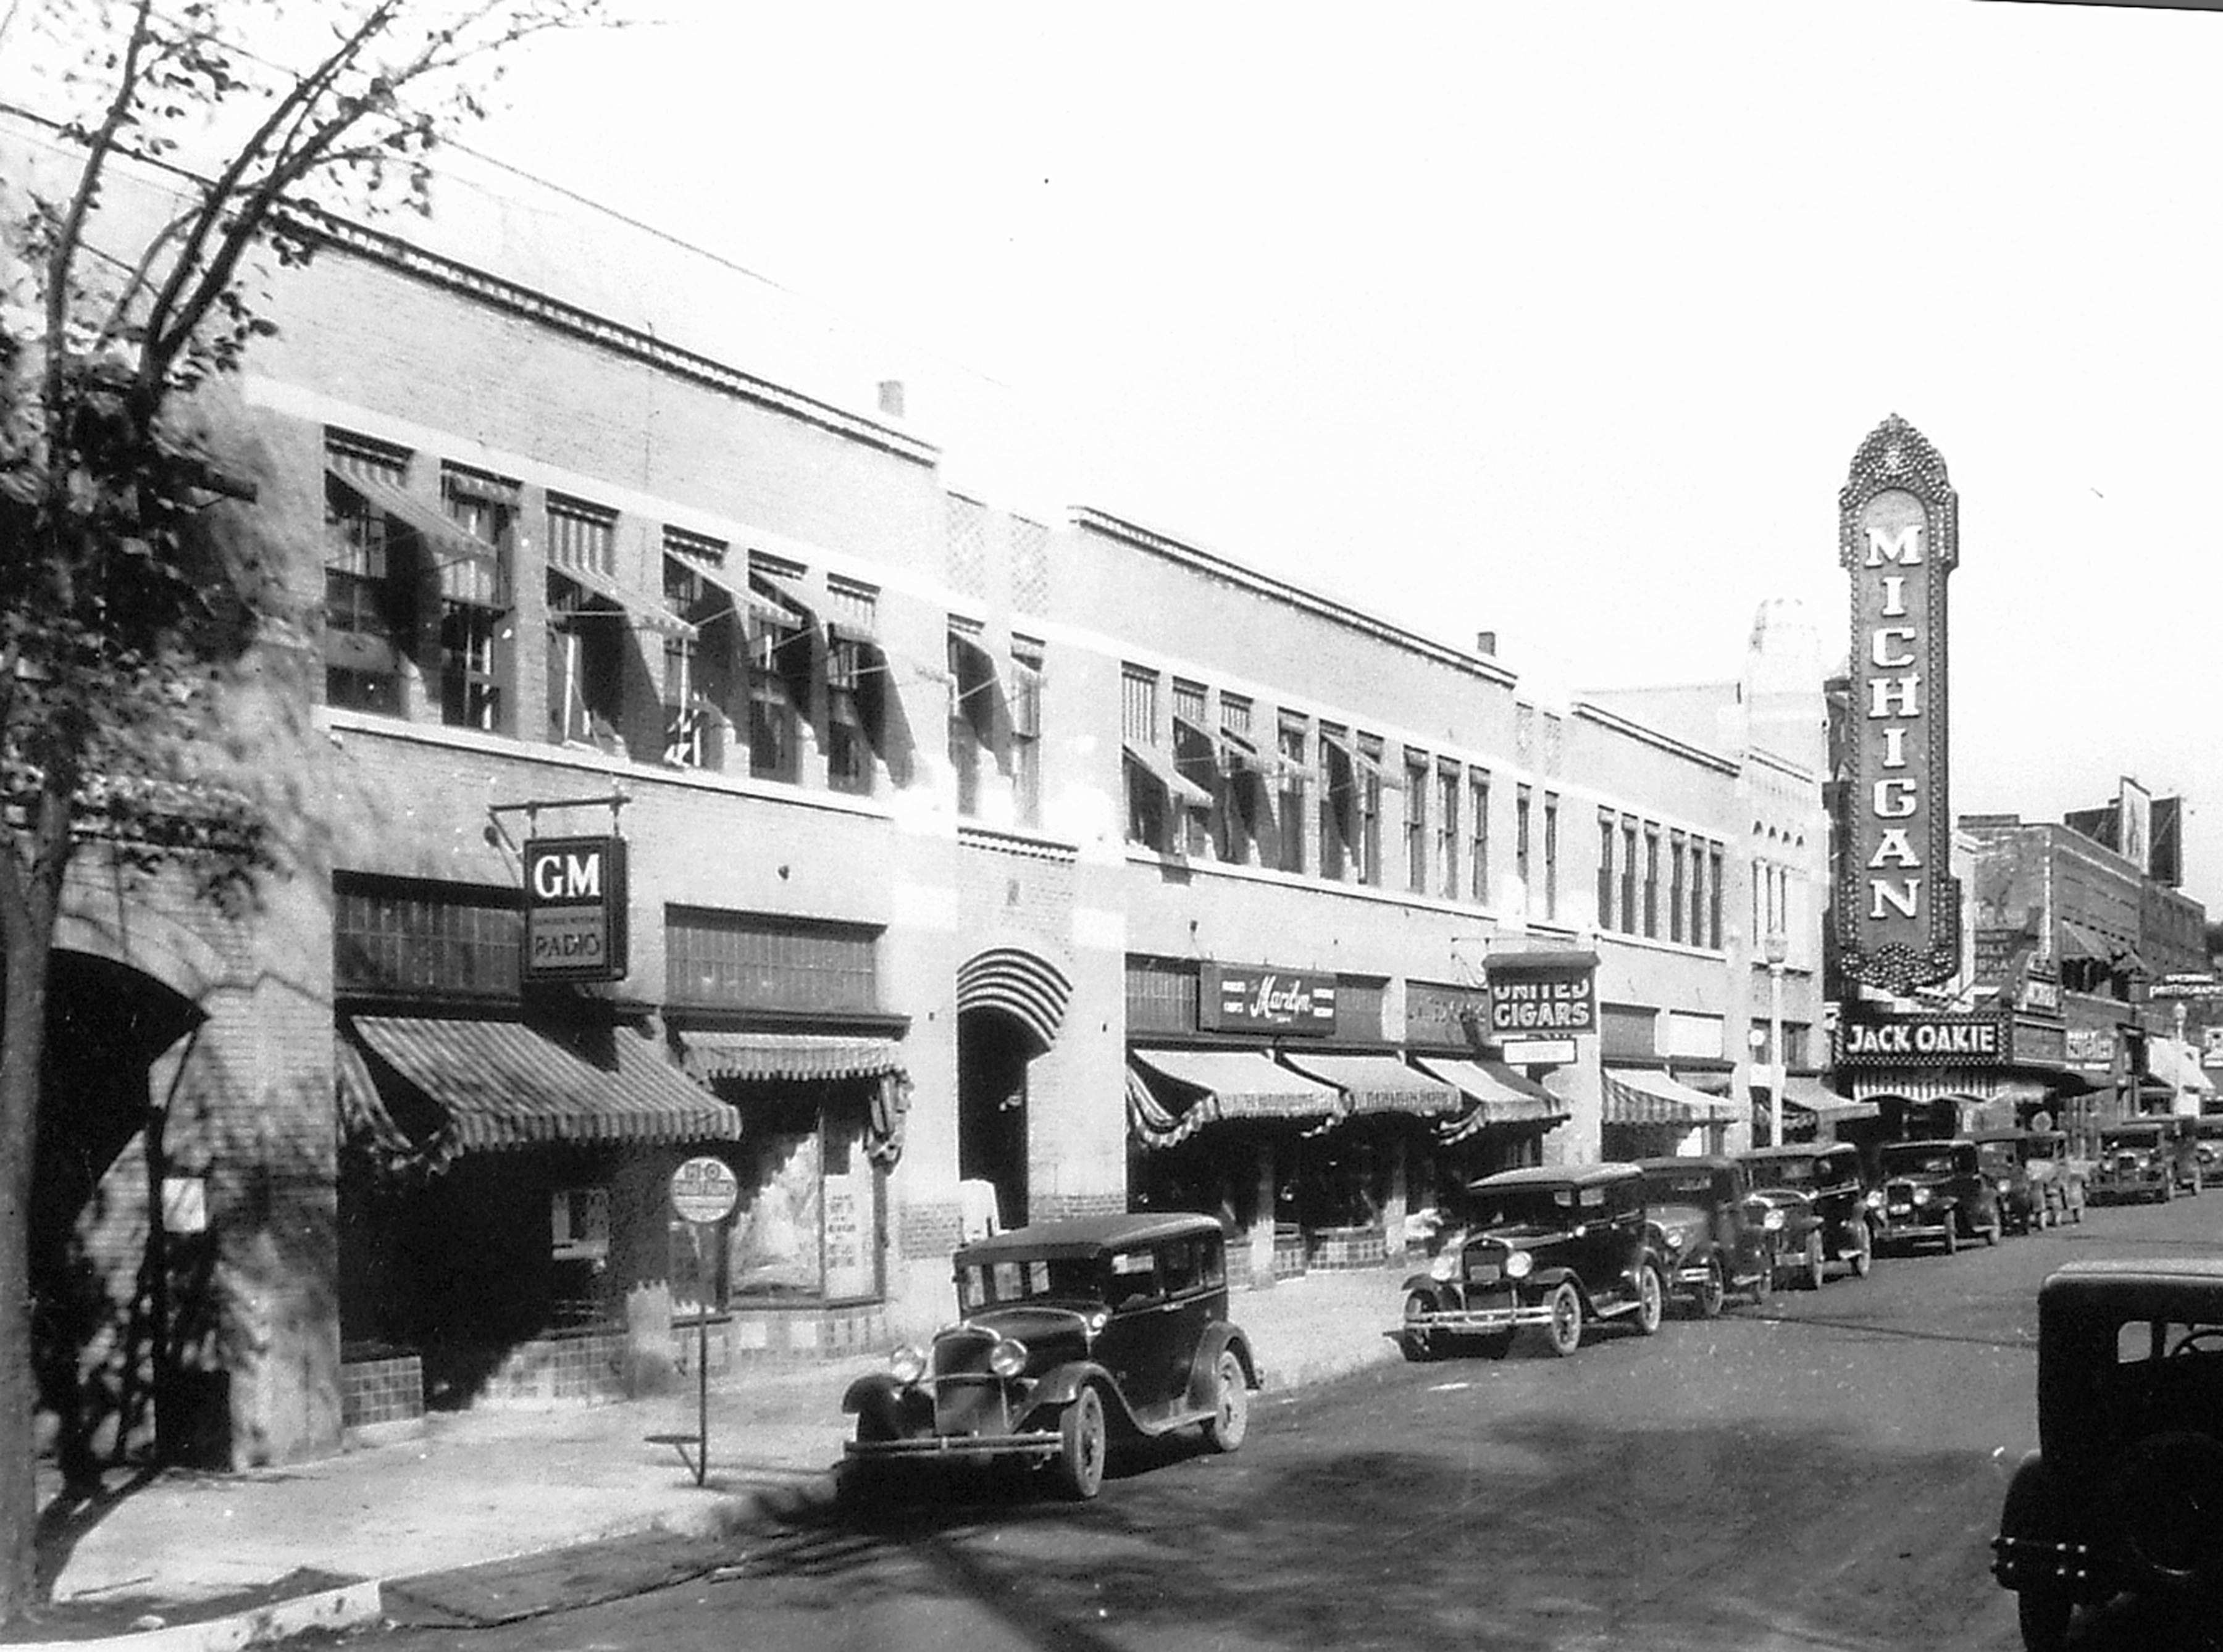 The Michigan Theater shortly after opening, ca. 1928 image